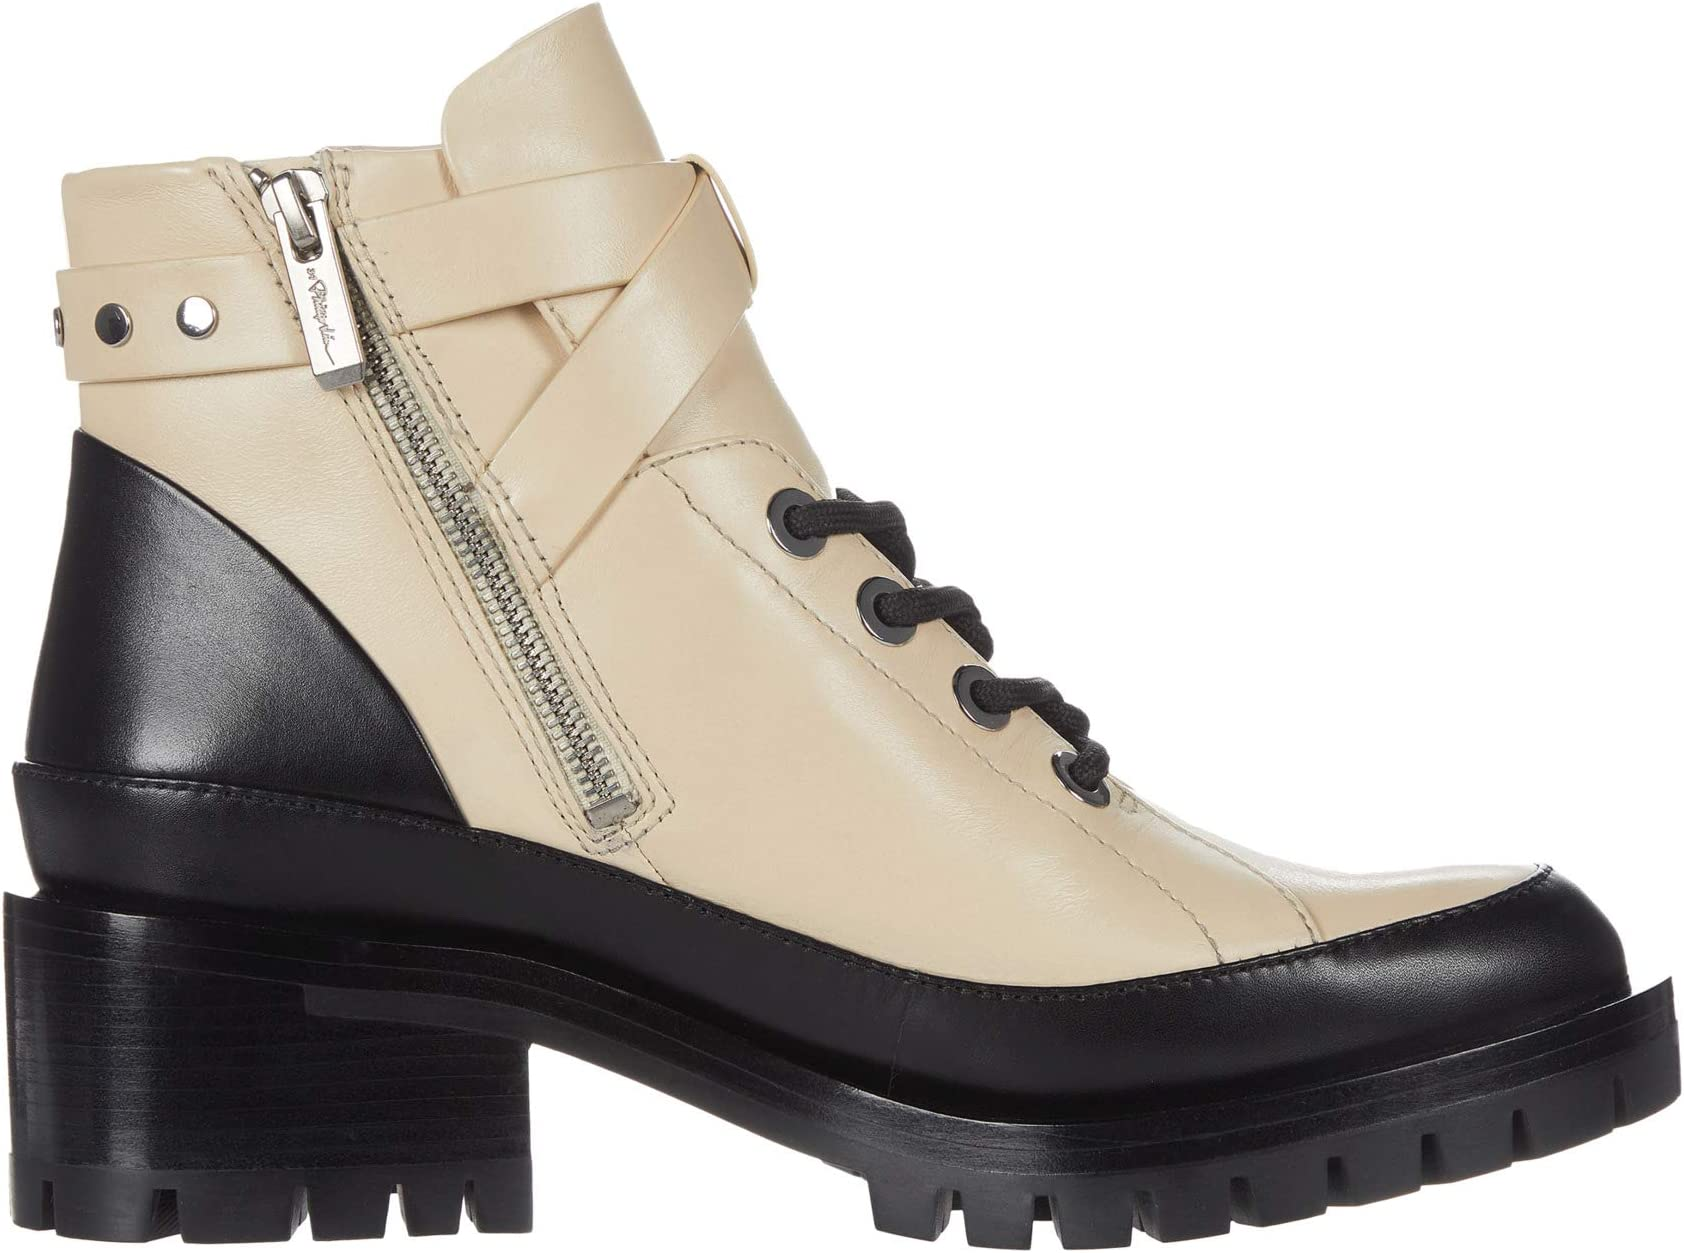 3.1 Phillip Lim Hayett 50mm Lace-Up Boot | Women's shoes | 2020 Newest